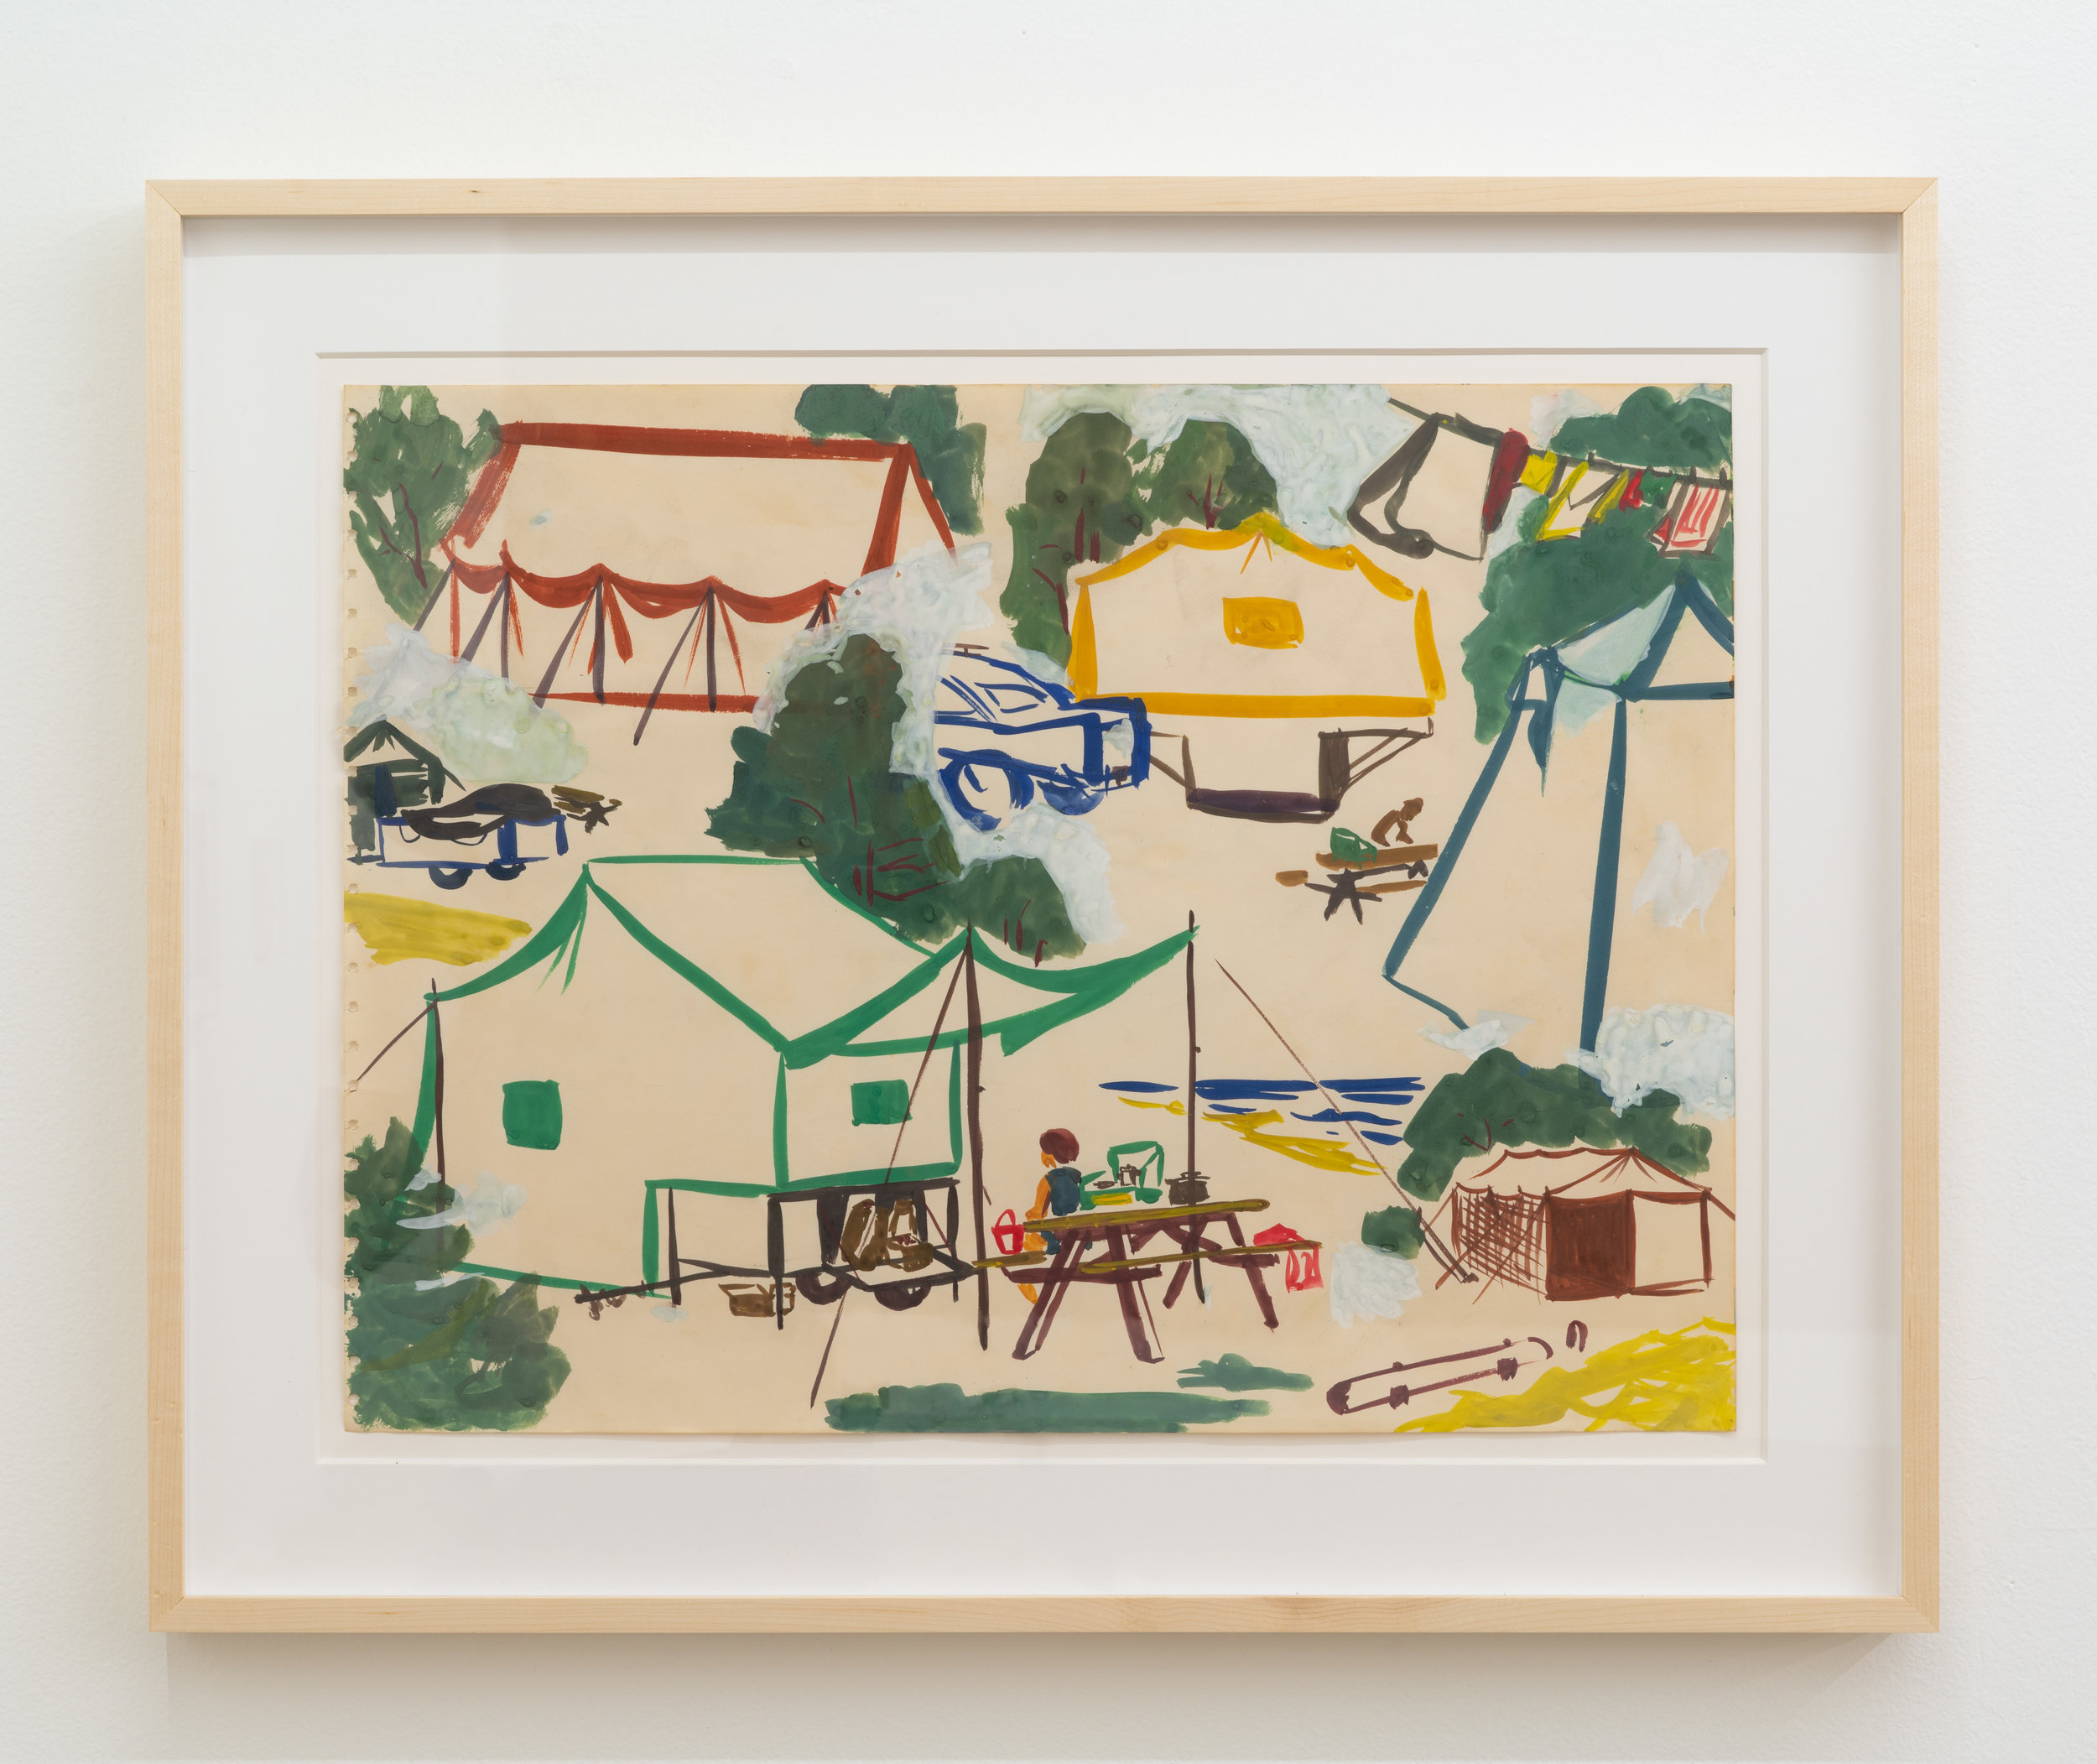 Paula Brunner Abelow,  Campsite,  circa 1960s, Tempera on paper, 18 x 24 inches